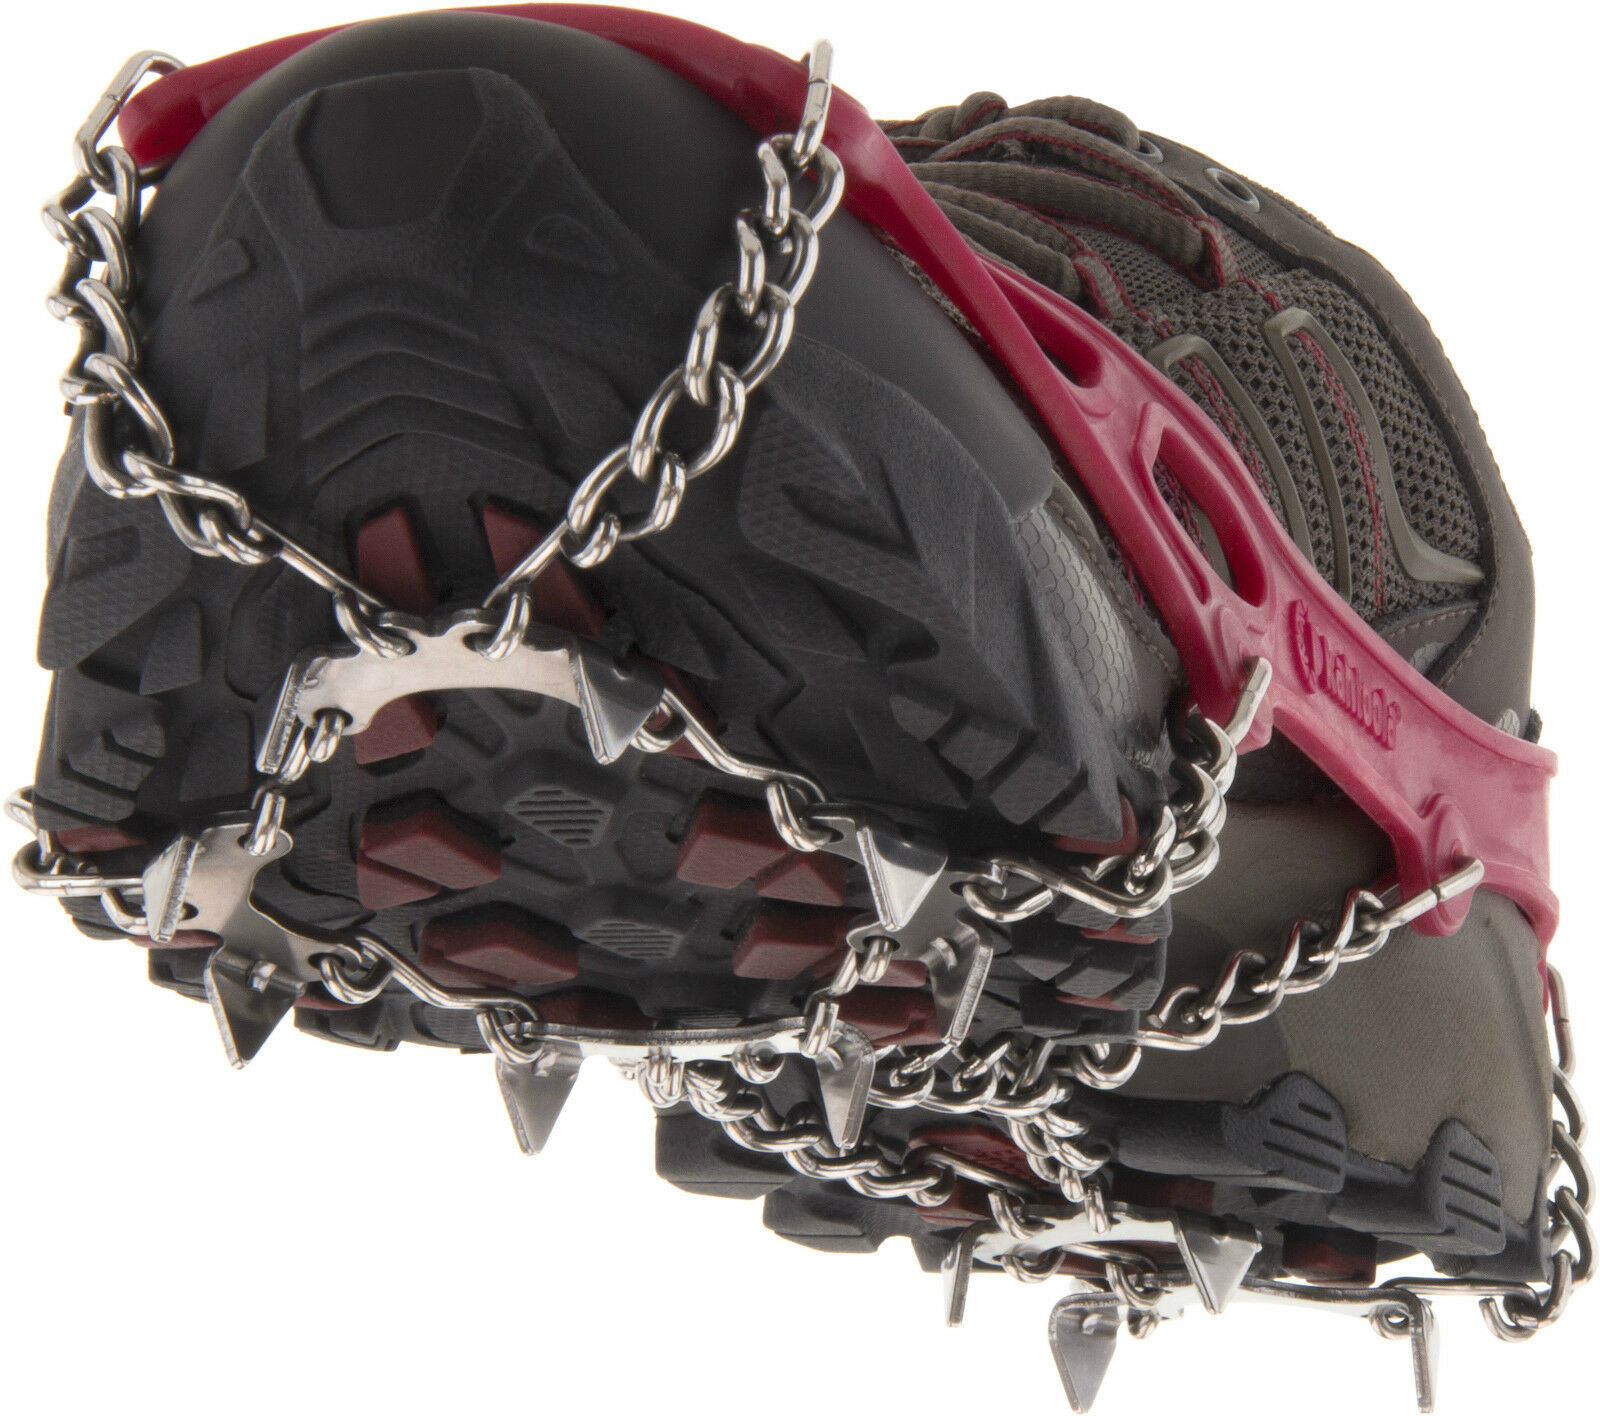 KAHTOOLA MICROSPIKES 16 NEW DESIGN for 2016MICRO CRAMPONS